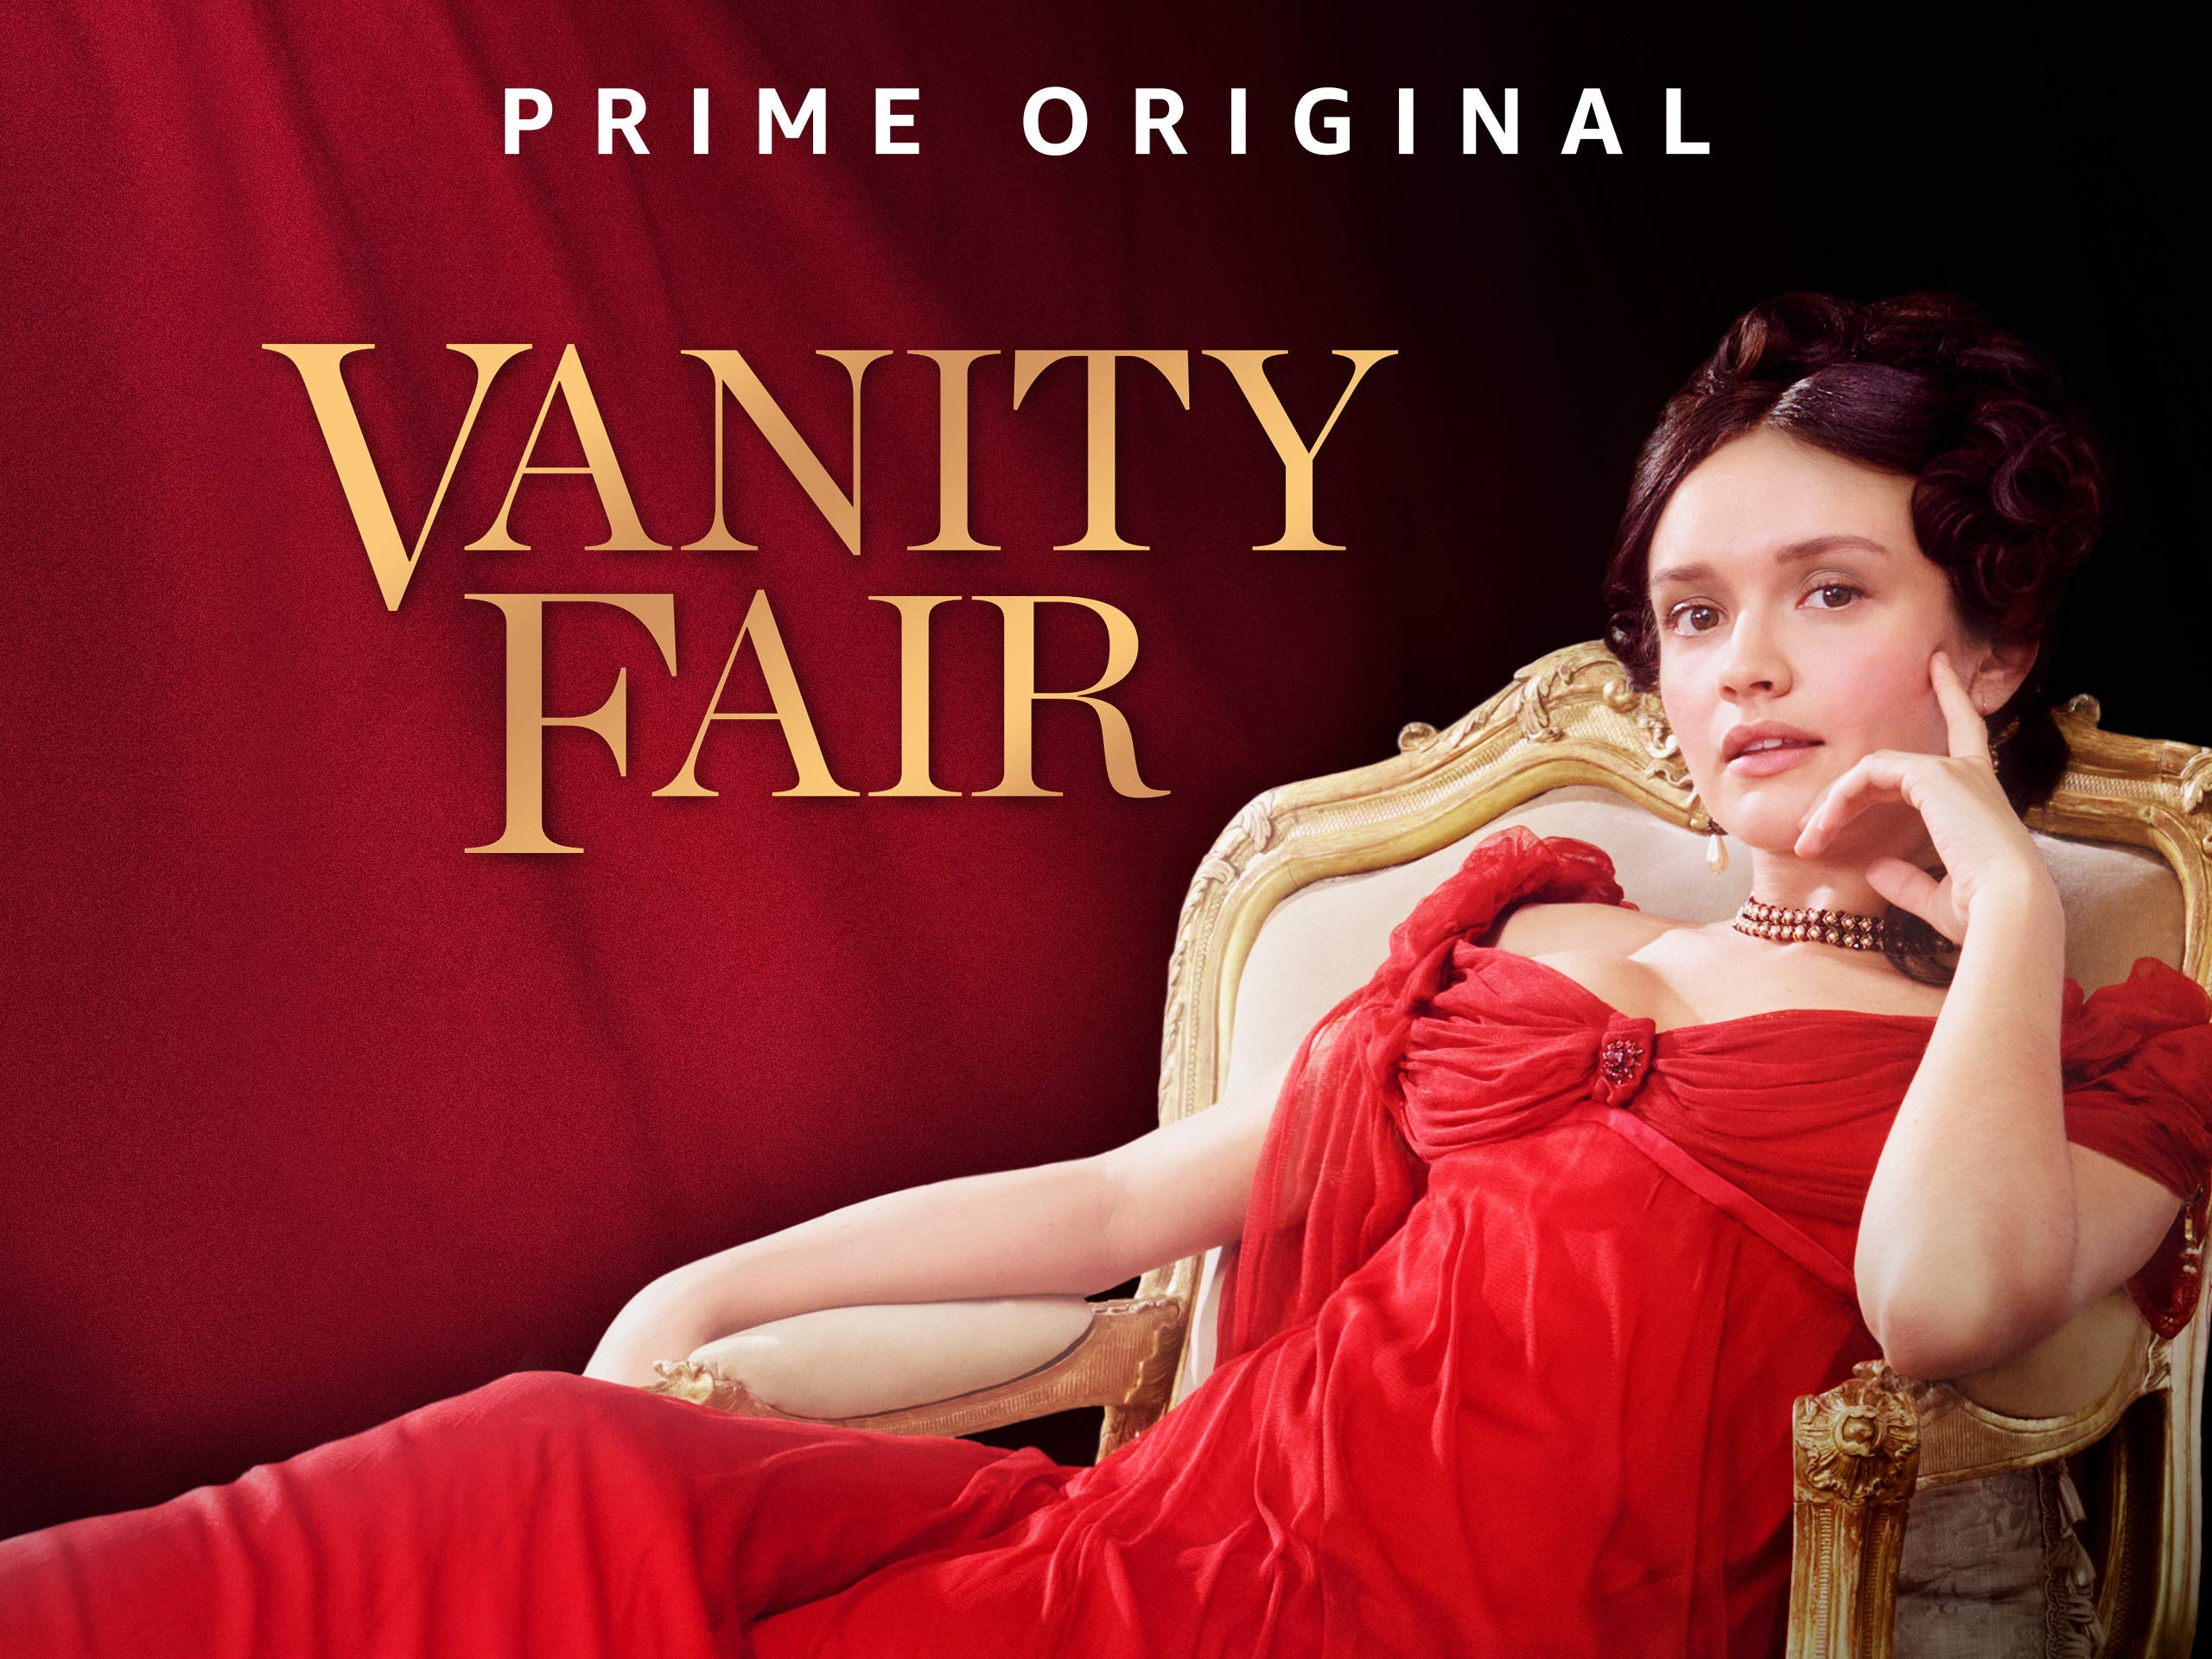 Check Out Vanity FairProducts On Amazon!